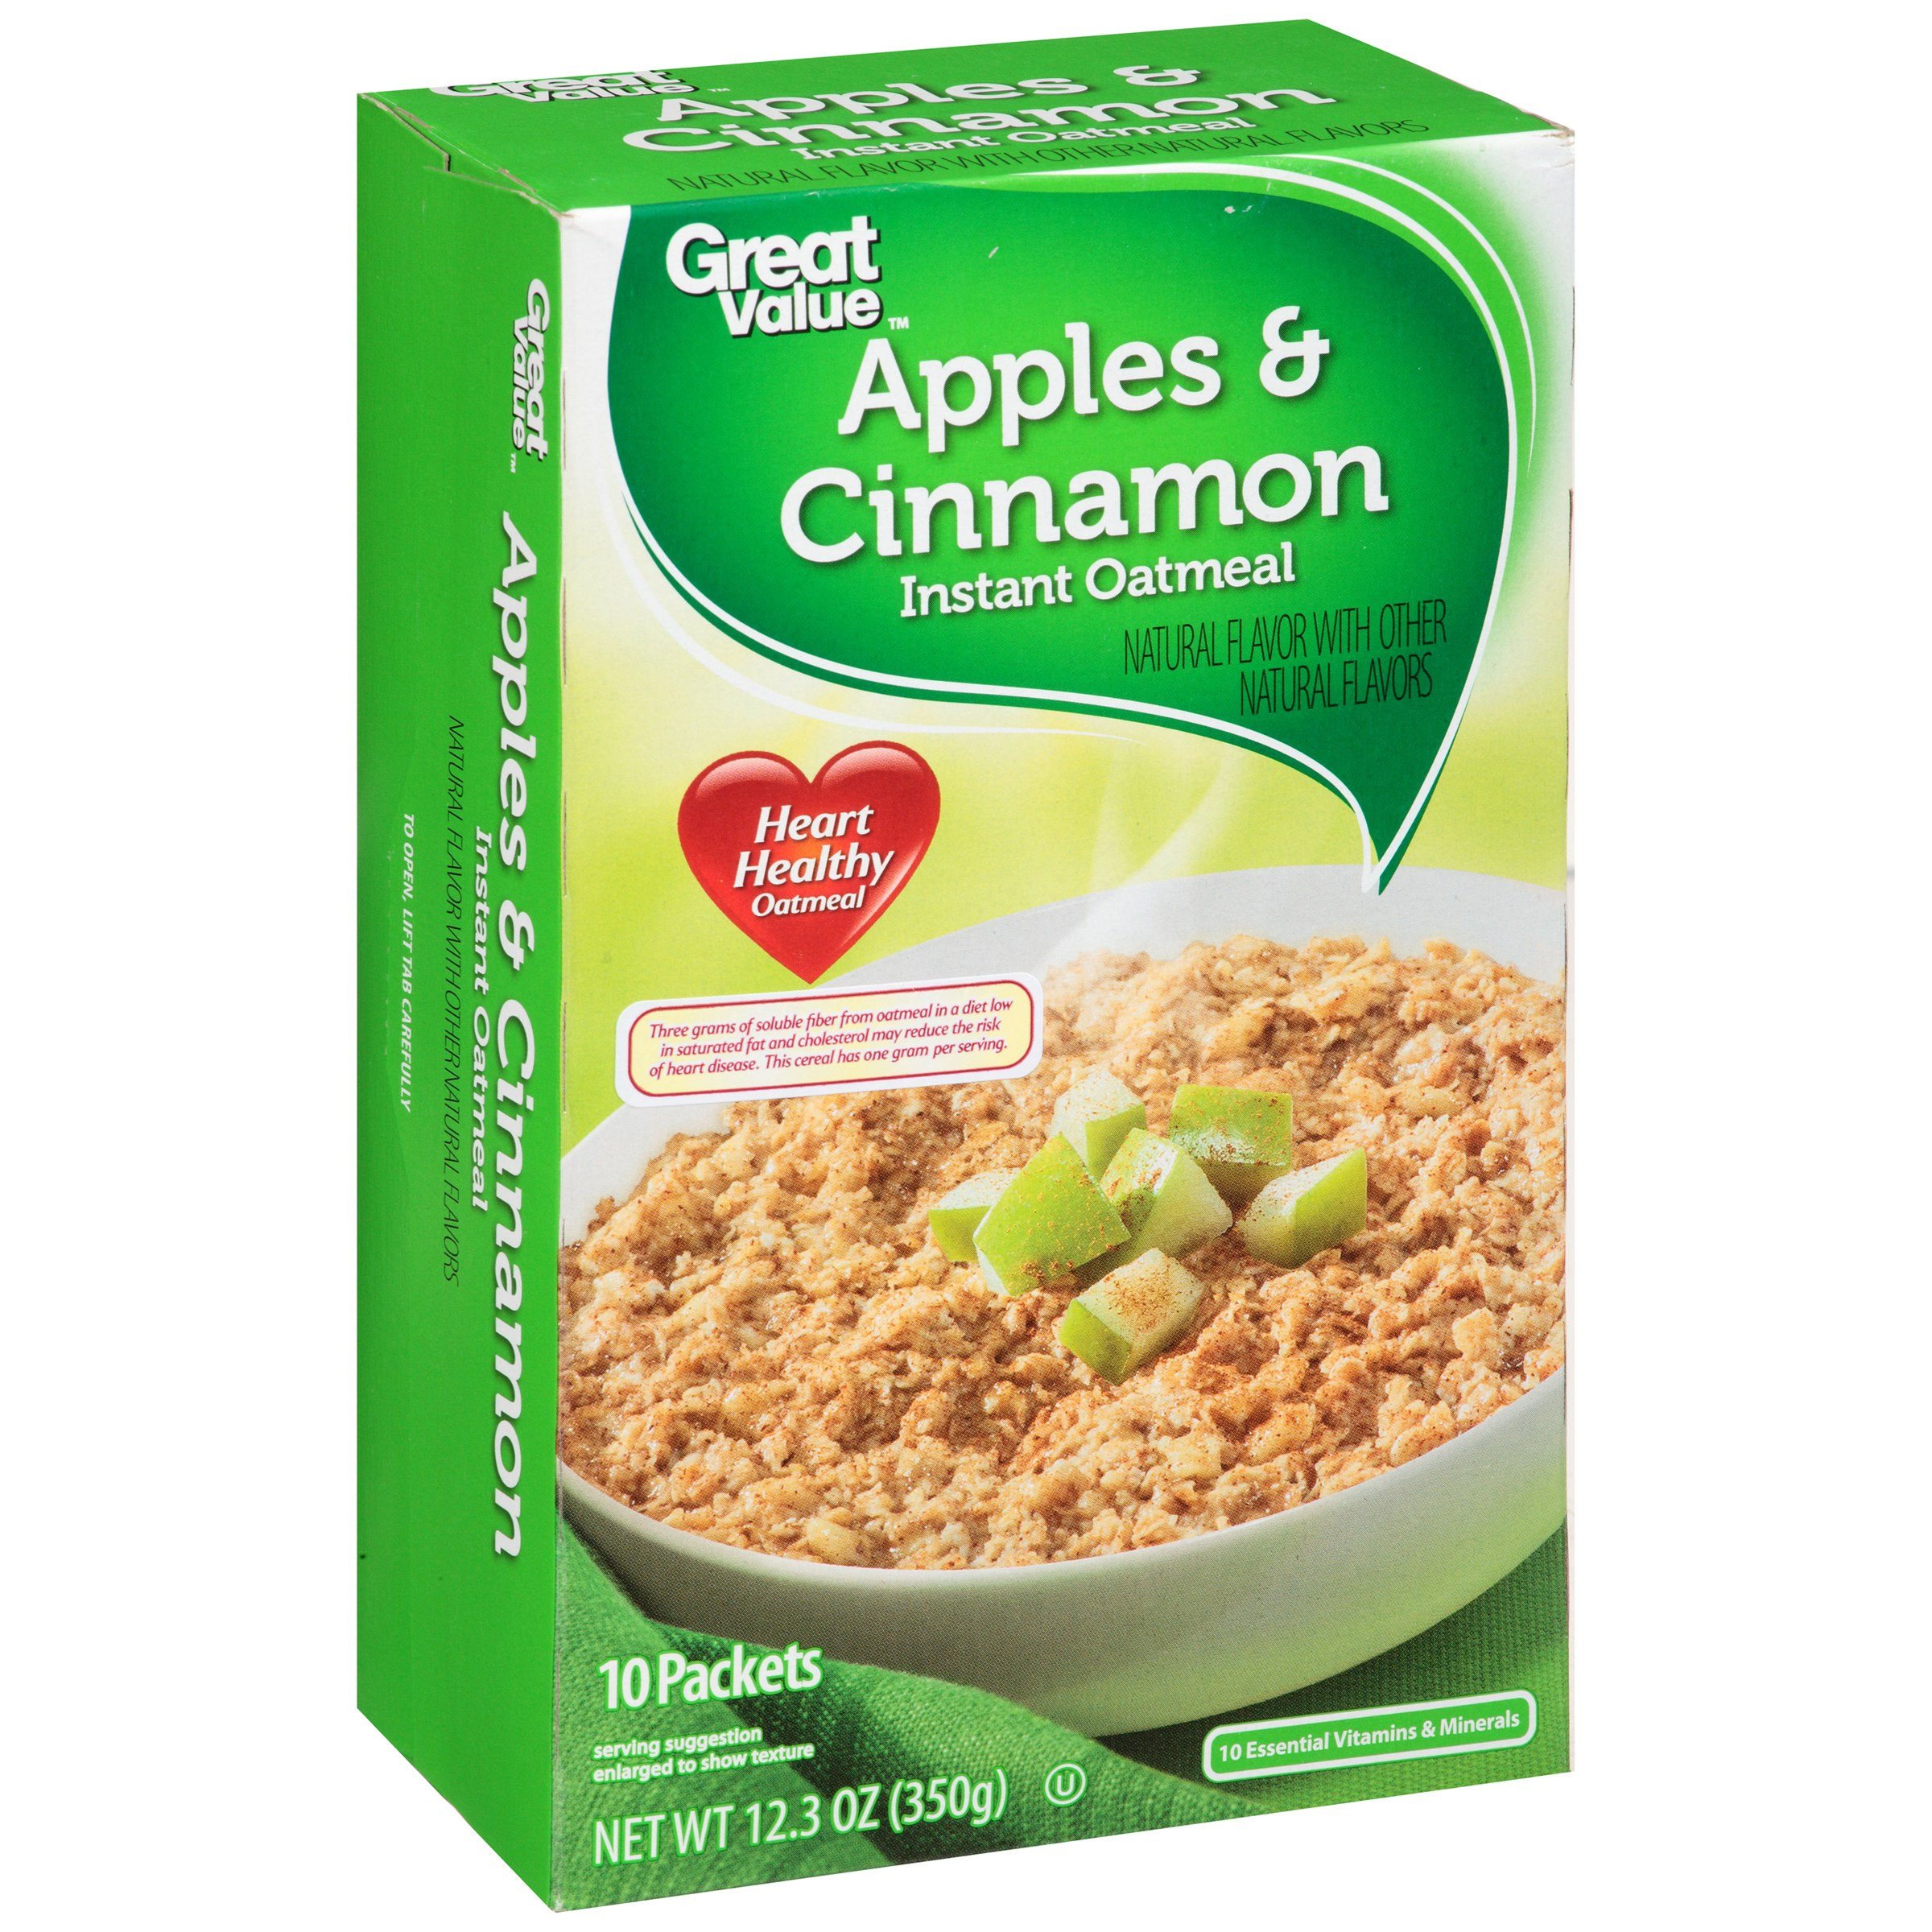 Great Value Apples & Cinnamon Instant Oatmeal, 12.3 Oz - Walmart.com